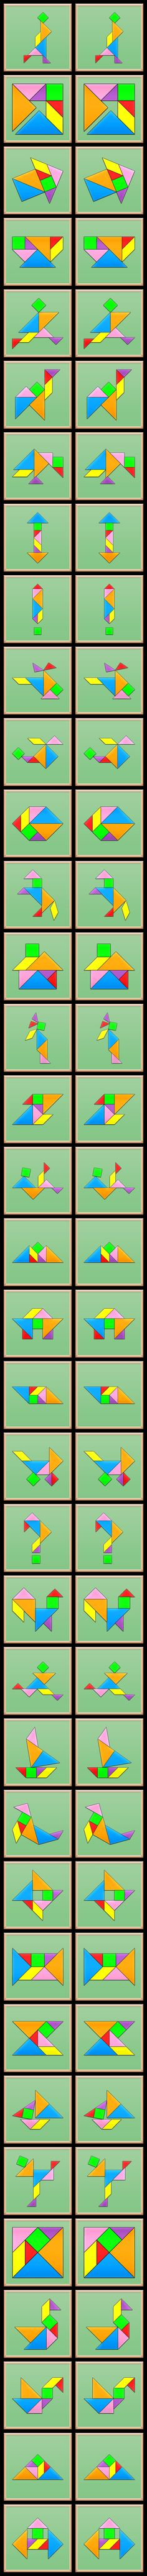 The Tangram Channel provides a great number of tangram puzzles, short videos, step by step tutorials and tangram-related activities. Games 4 Kids, Math For Kids, Math Games, Educational Activities, Toddler Activities, Activities For Kids, Tangram Printable, Tangram Puzzles, Grande Section